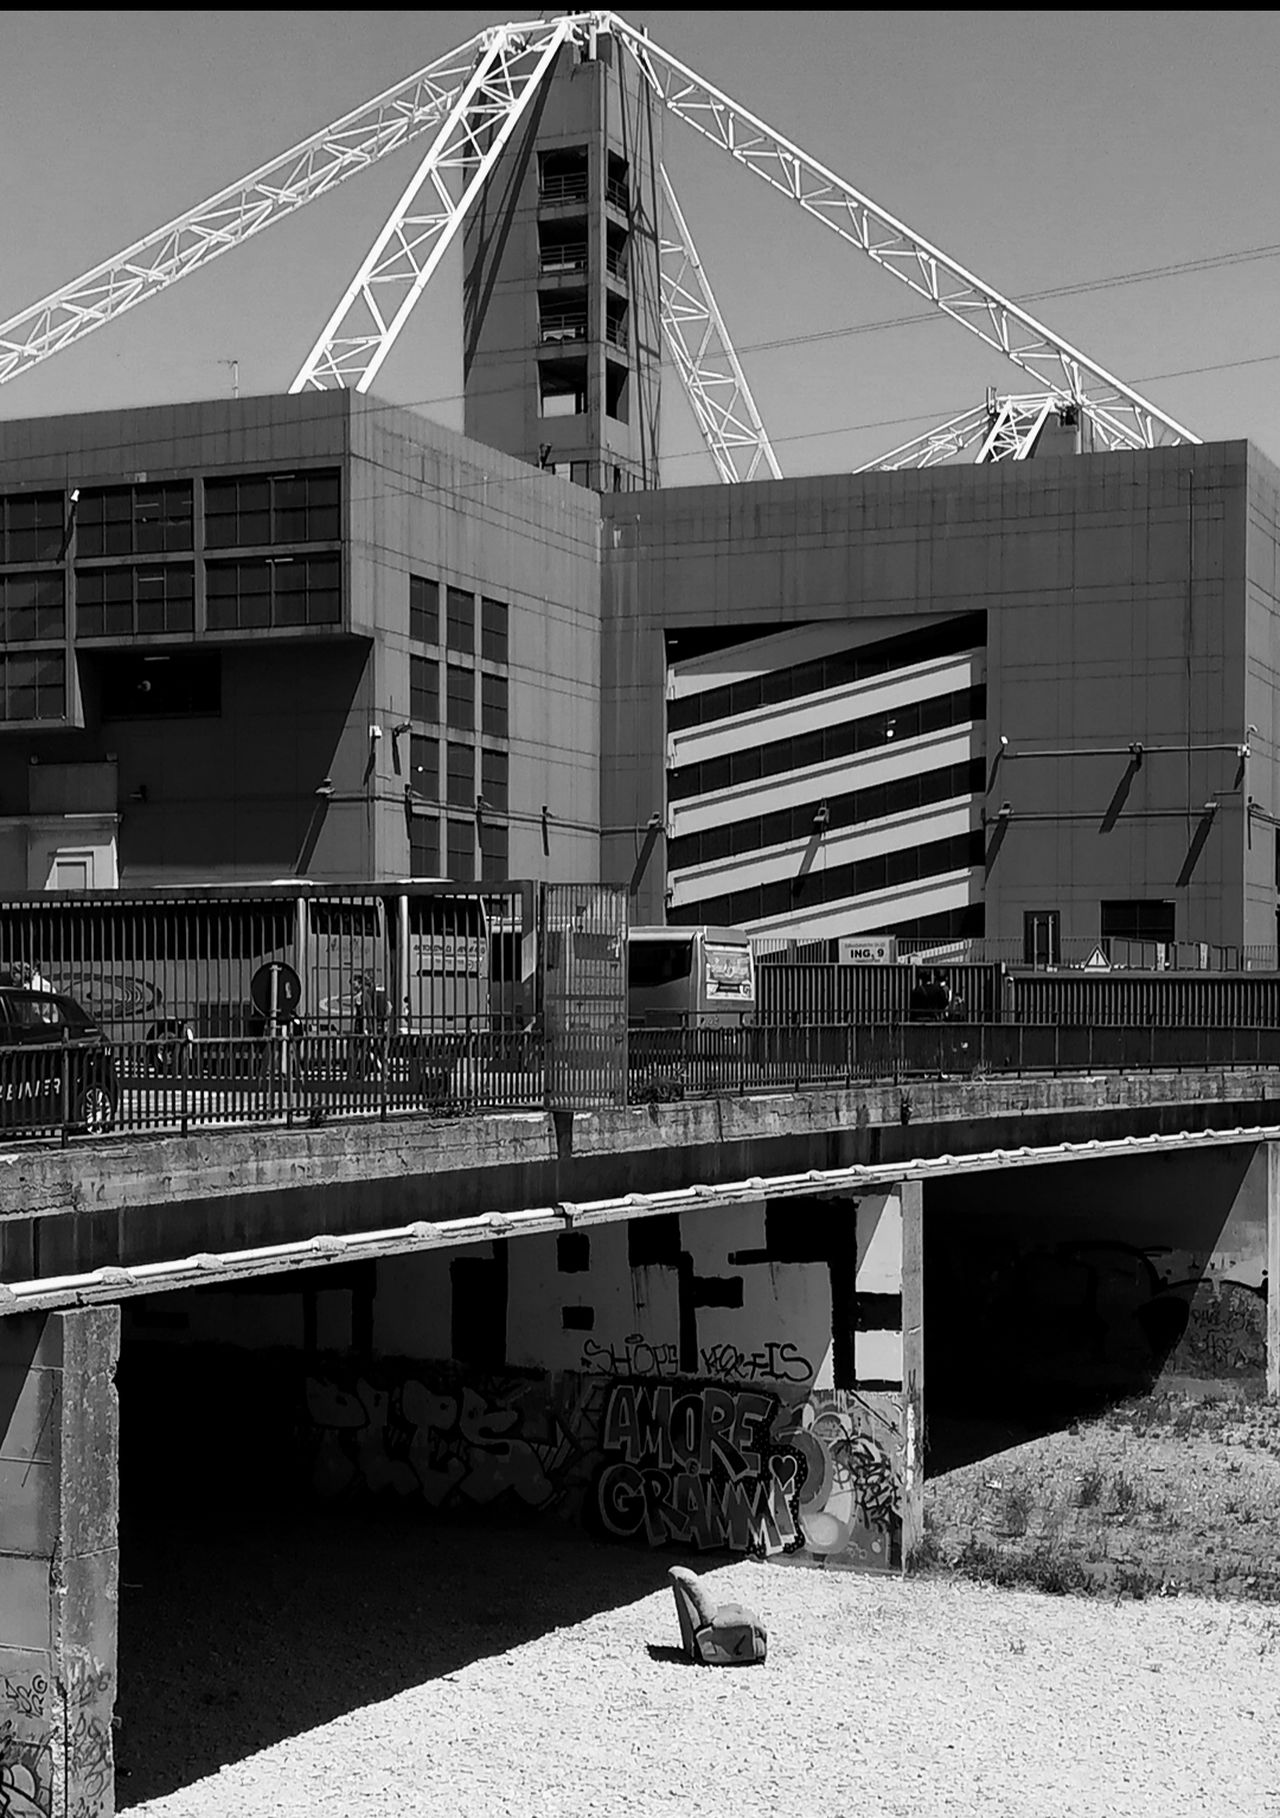 Architecture Business Finance And Industry Built Structure No People Building Exterior Outdoors Day Water Black And White Black & White